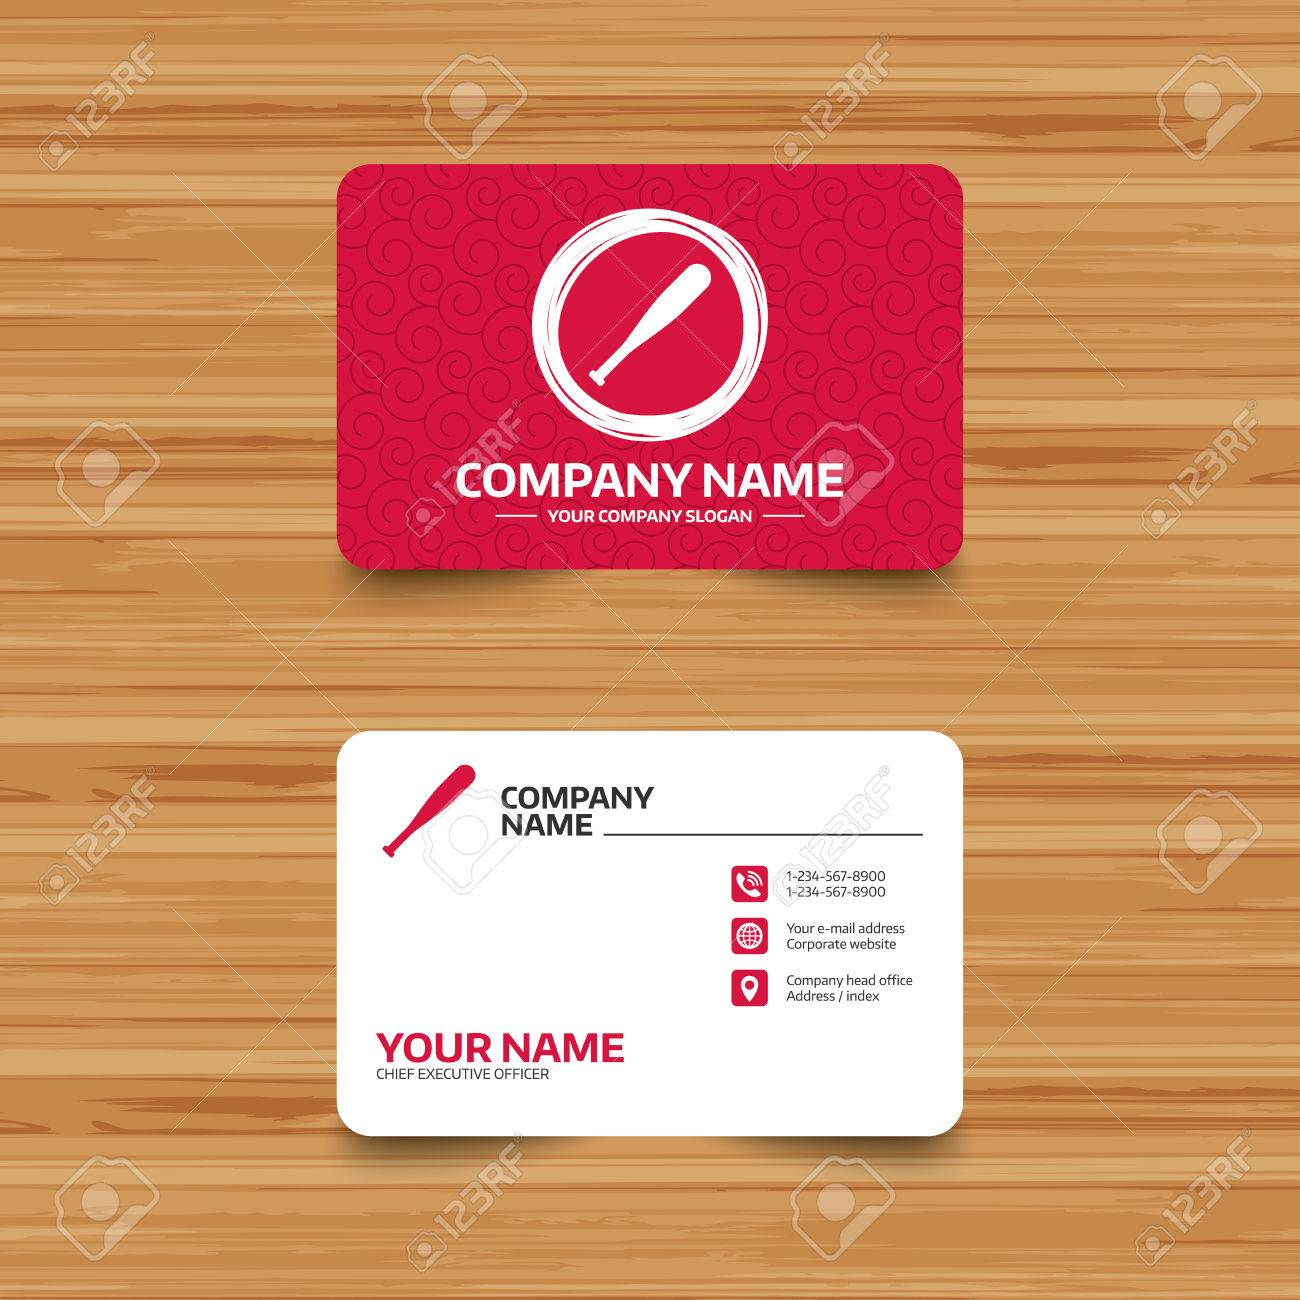 Business card template with texture baseball bat sign icon business card template with texture baseball bat sign icon sport hit equipment symbol colourmoves